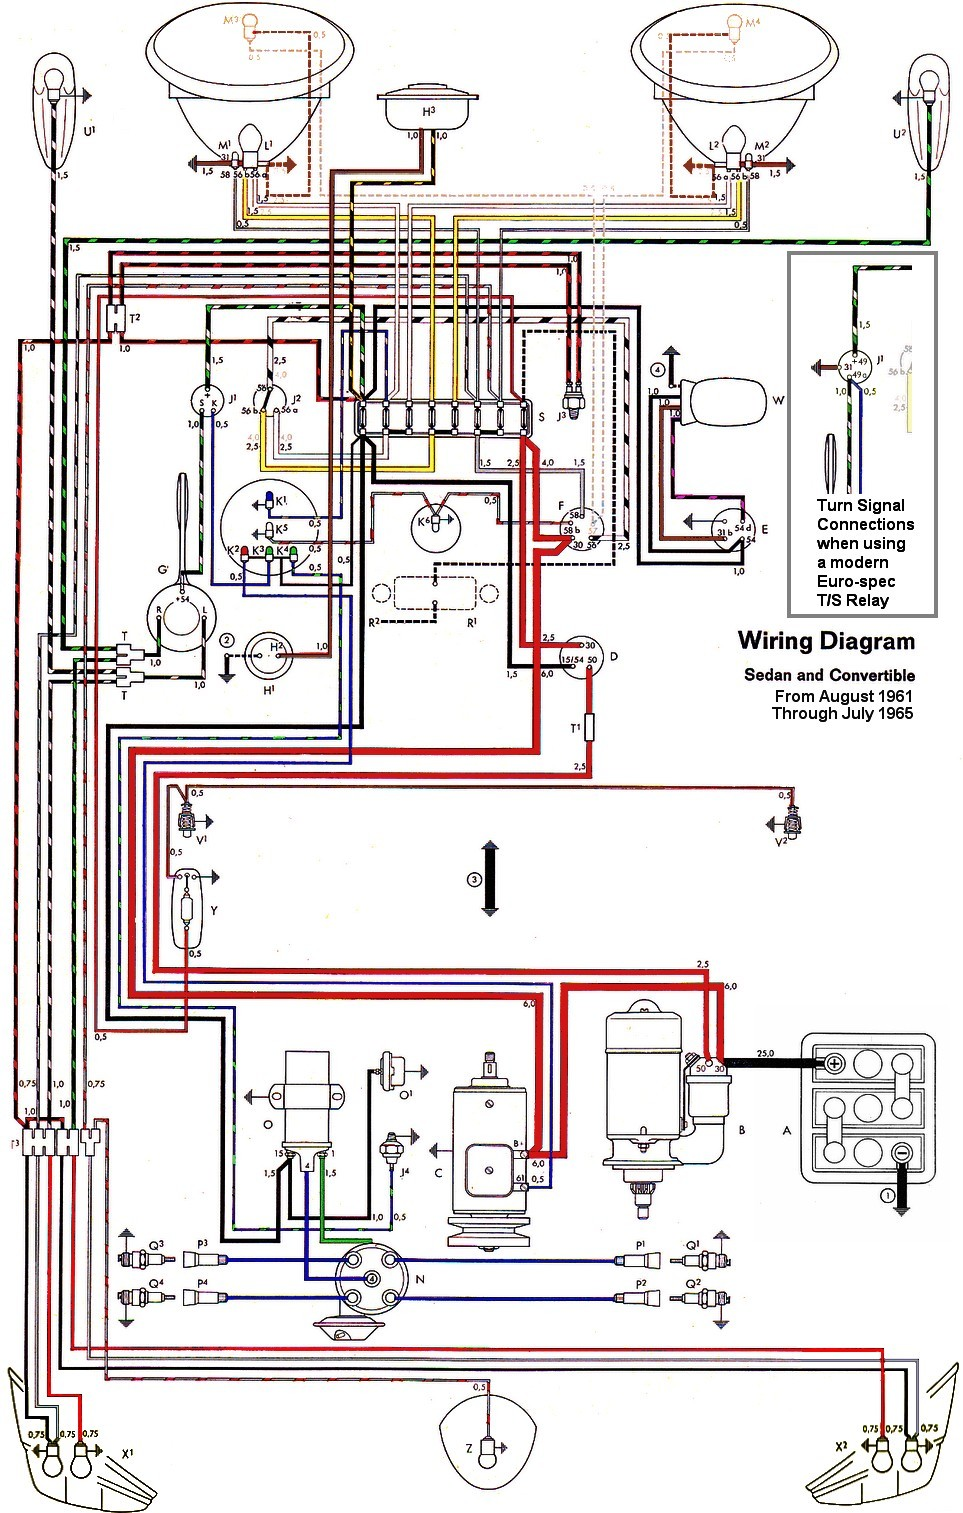 hight resolution of thesamba com type 1 wiring diagrams vw beetle speedometer vw beetle fuse diagram